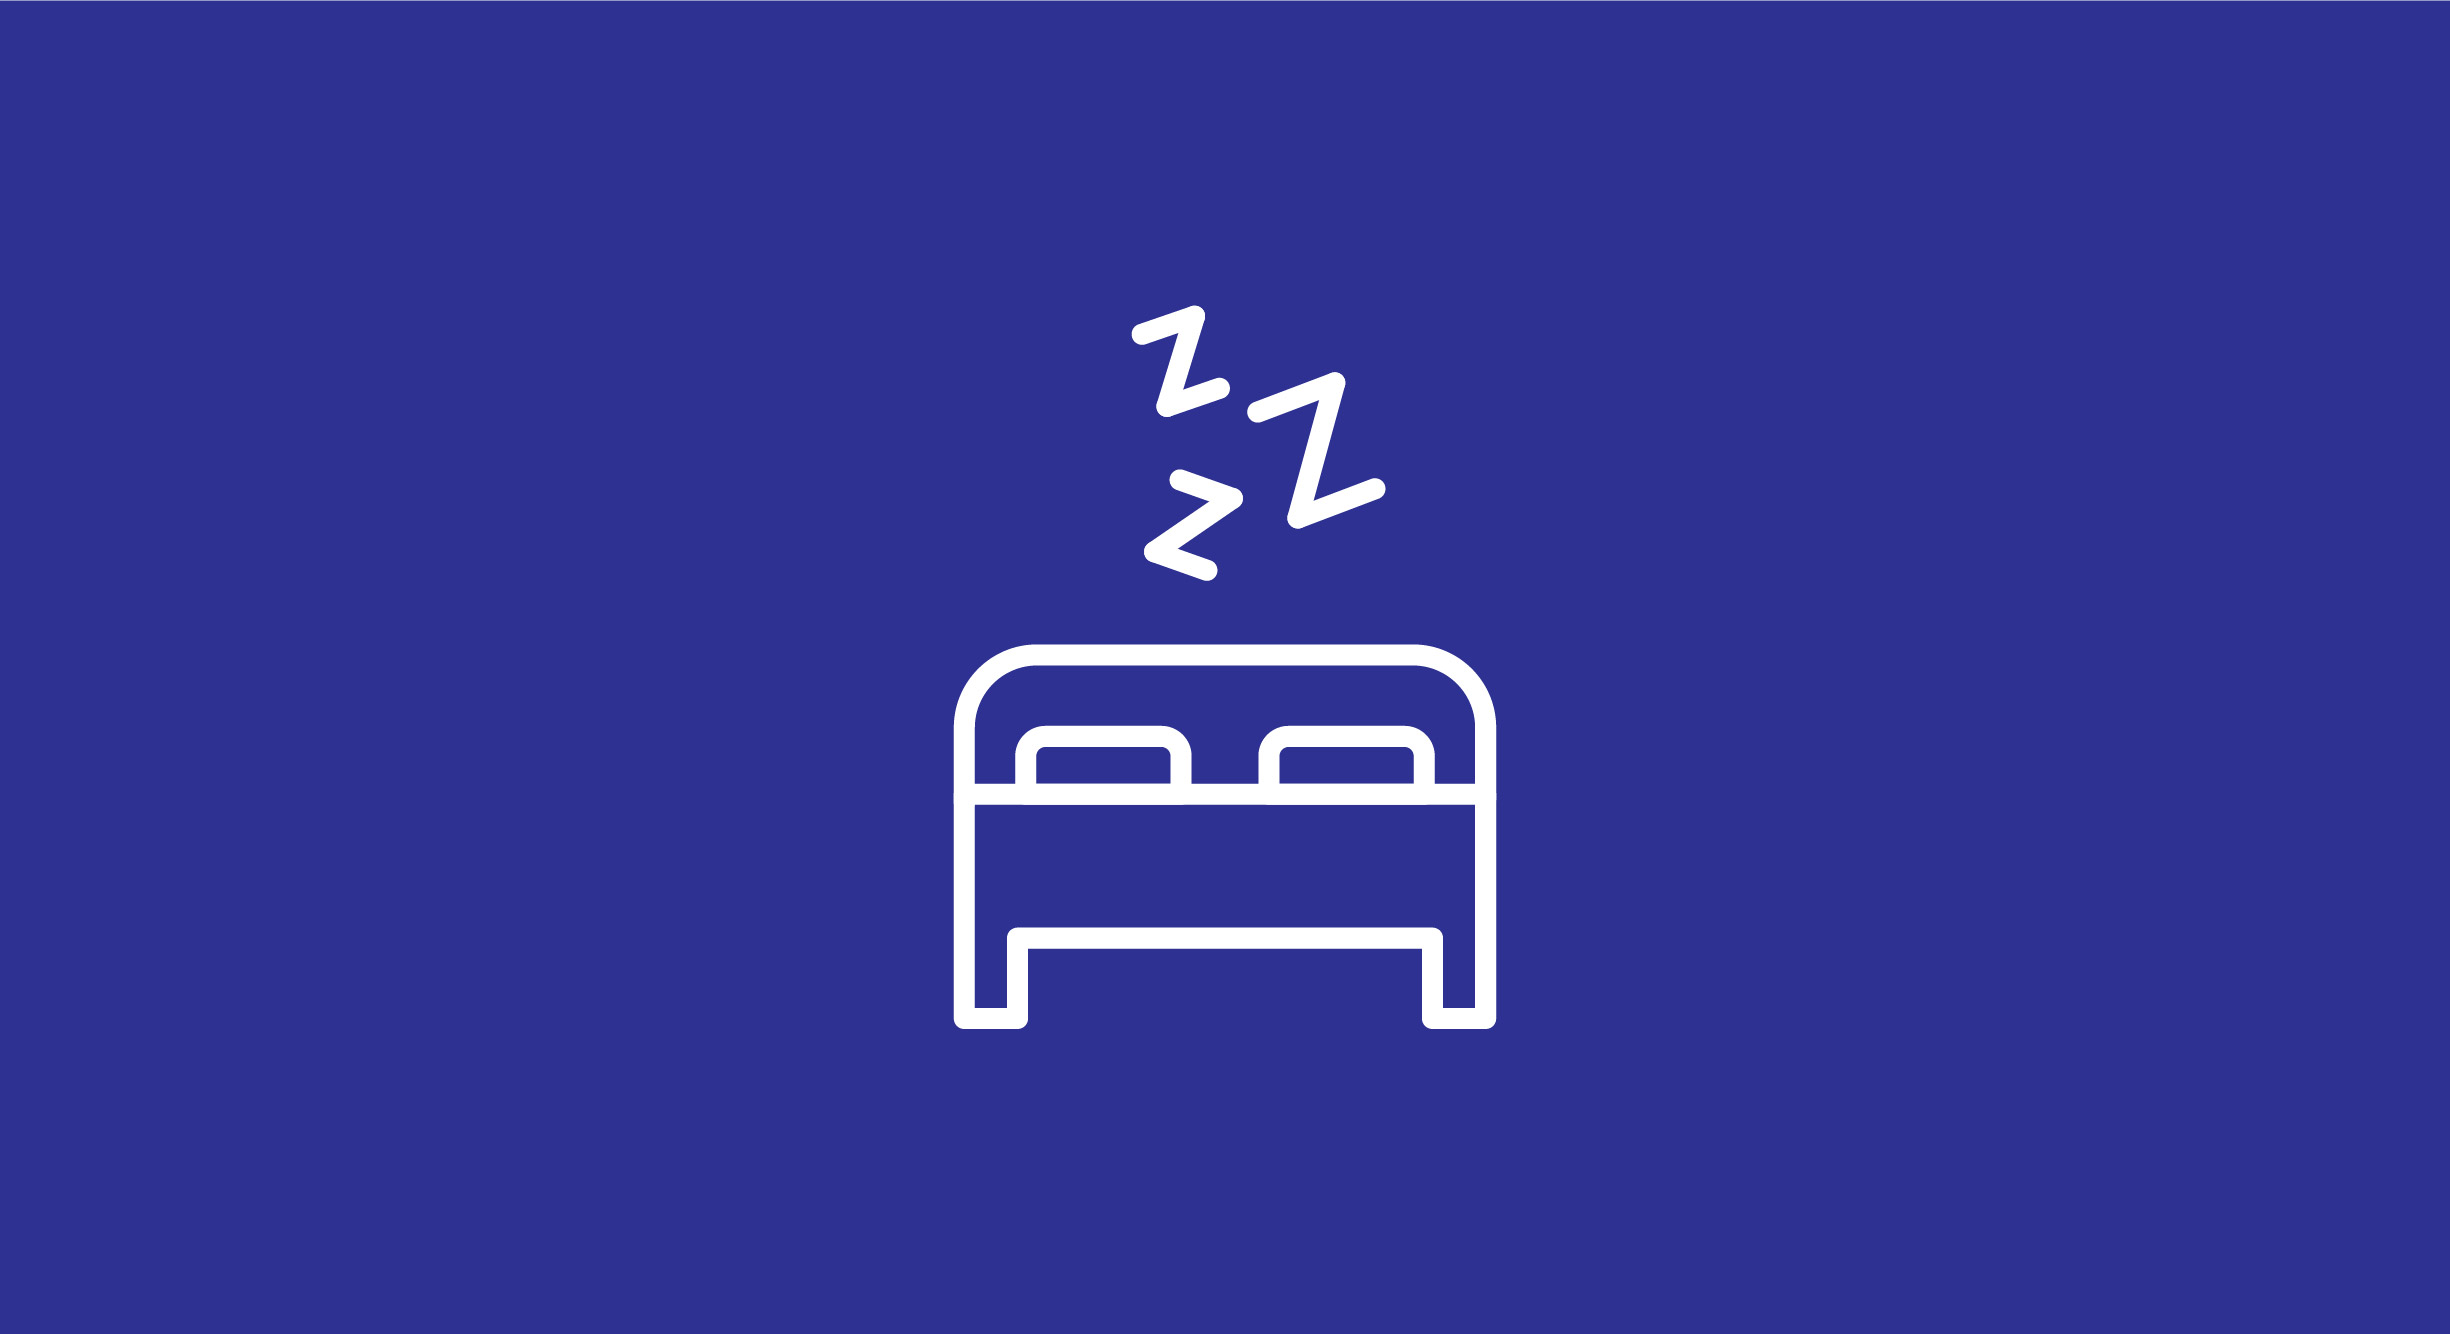 Make routine the key to your Zzzs